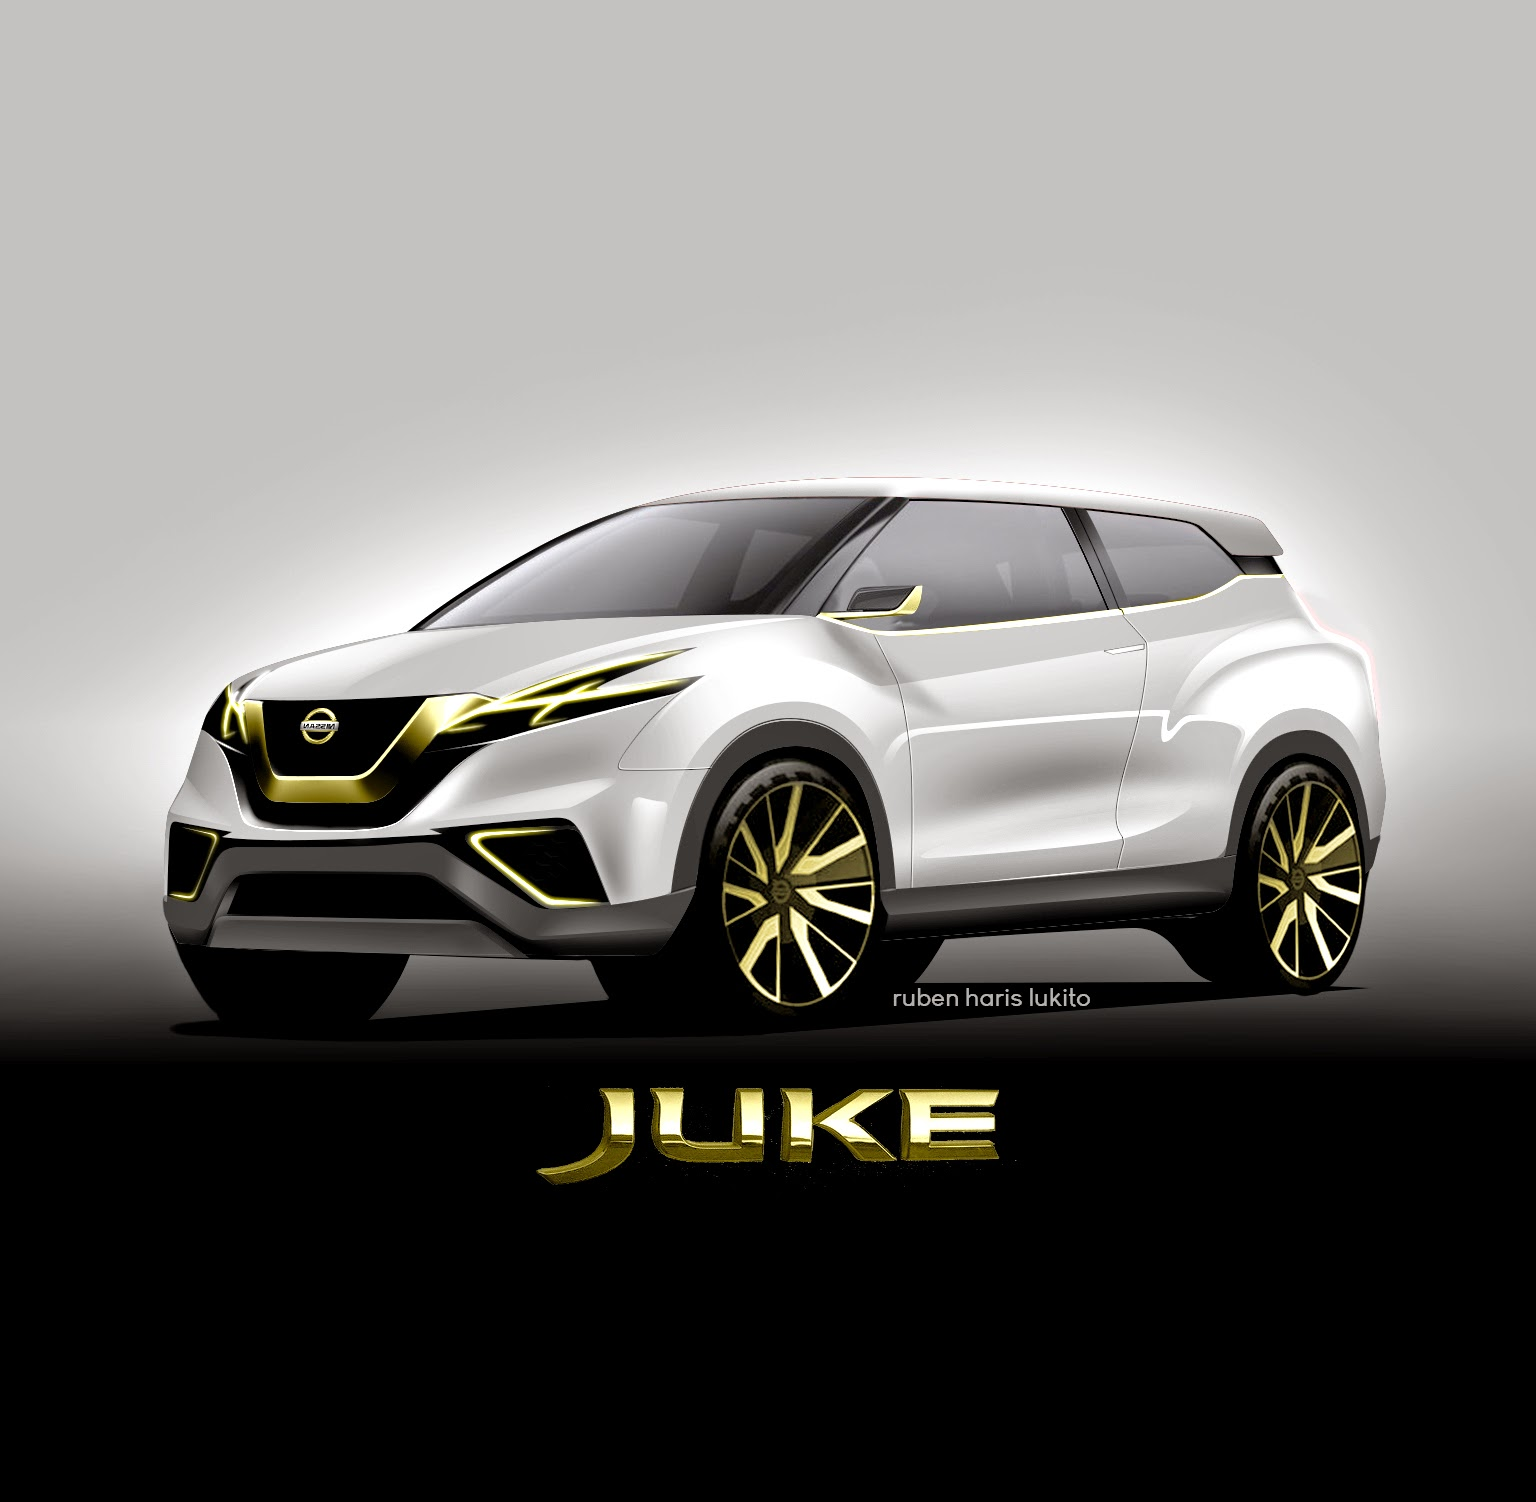 nissan juke 2016 concept gold edition car modification idea. Black Bedroom Furniture Sets. Home Design Ideas